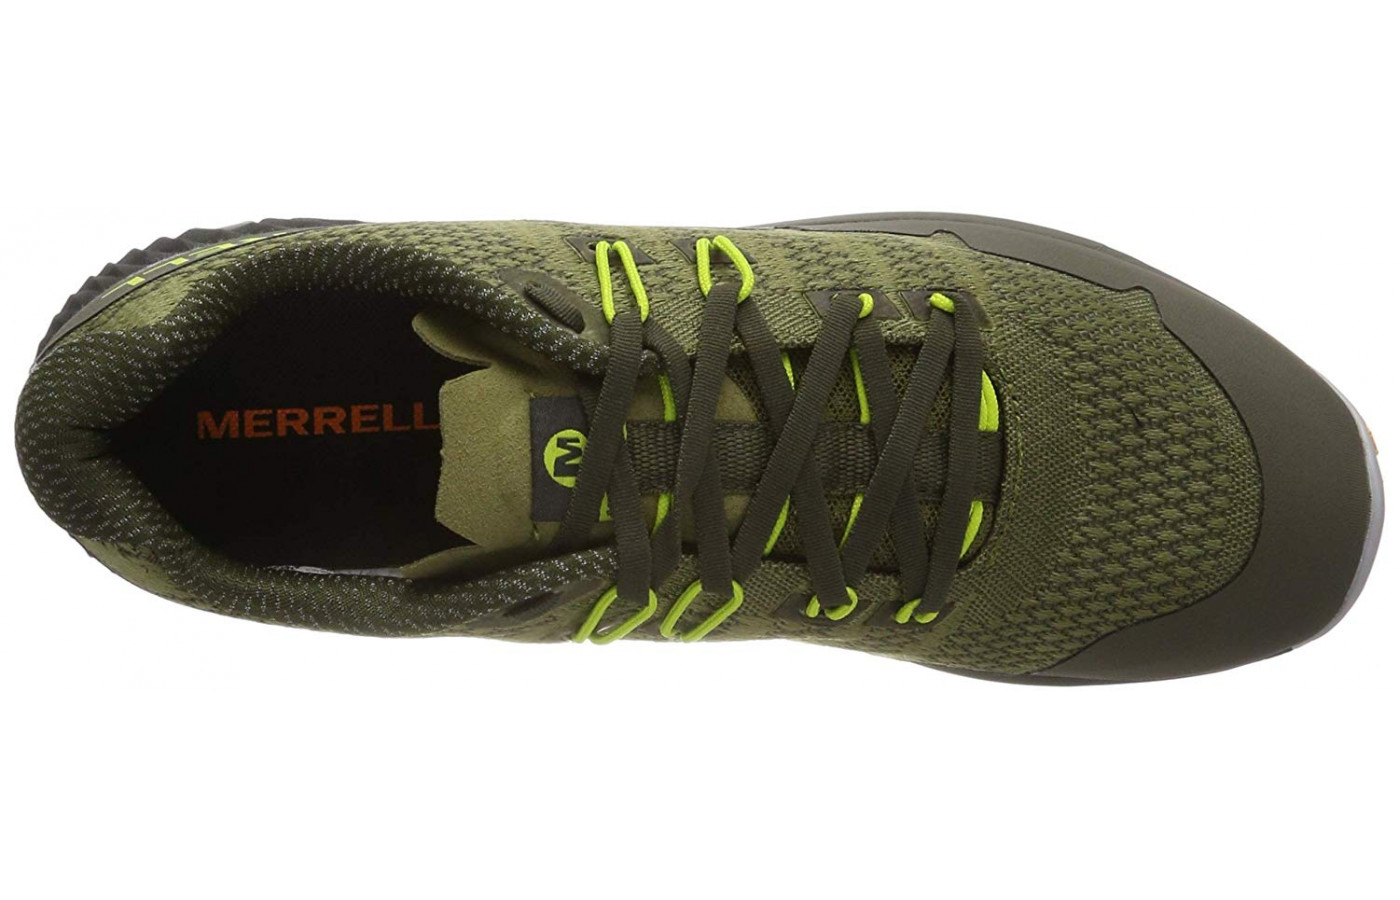 Jacquard mesh forms the Agility Peak Flex 3's upper